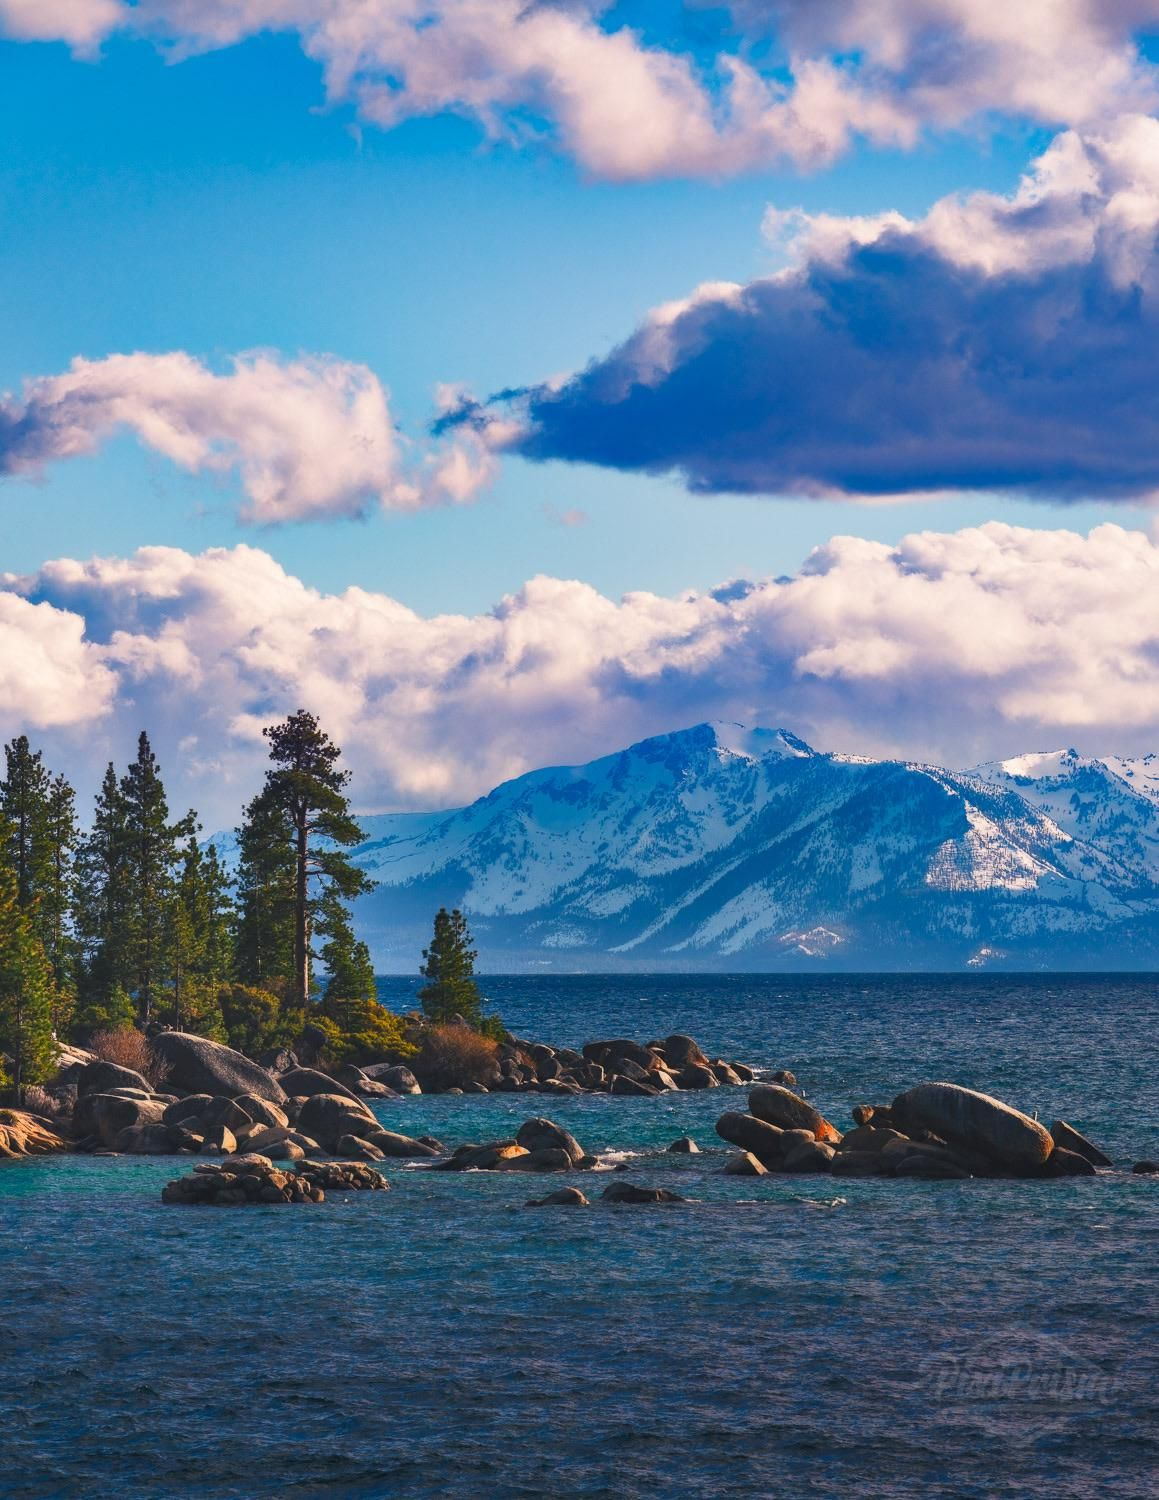 The Clearing Of A Spring Storm On The West Side Of Lake Tahoe Nevada 1200x1500 In 2020 Lake Tahoe Nevada Beautiful Photos Of Nature Lake Tahoe